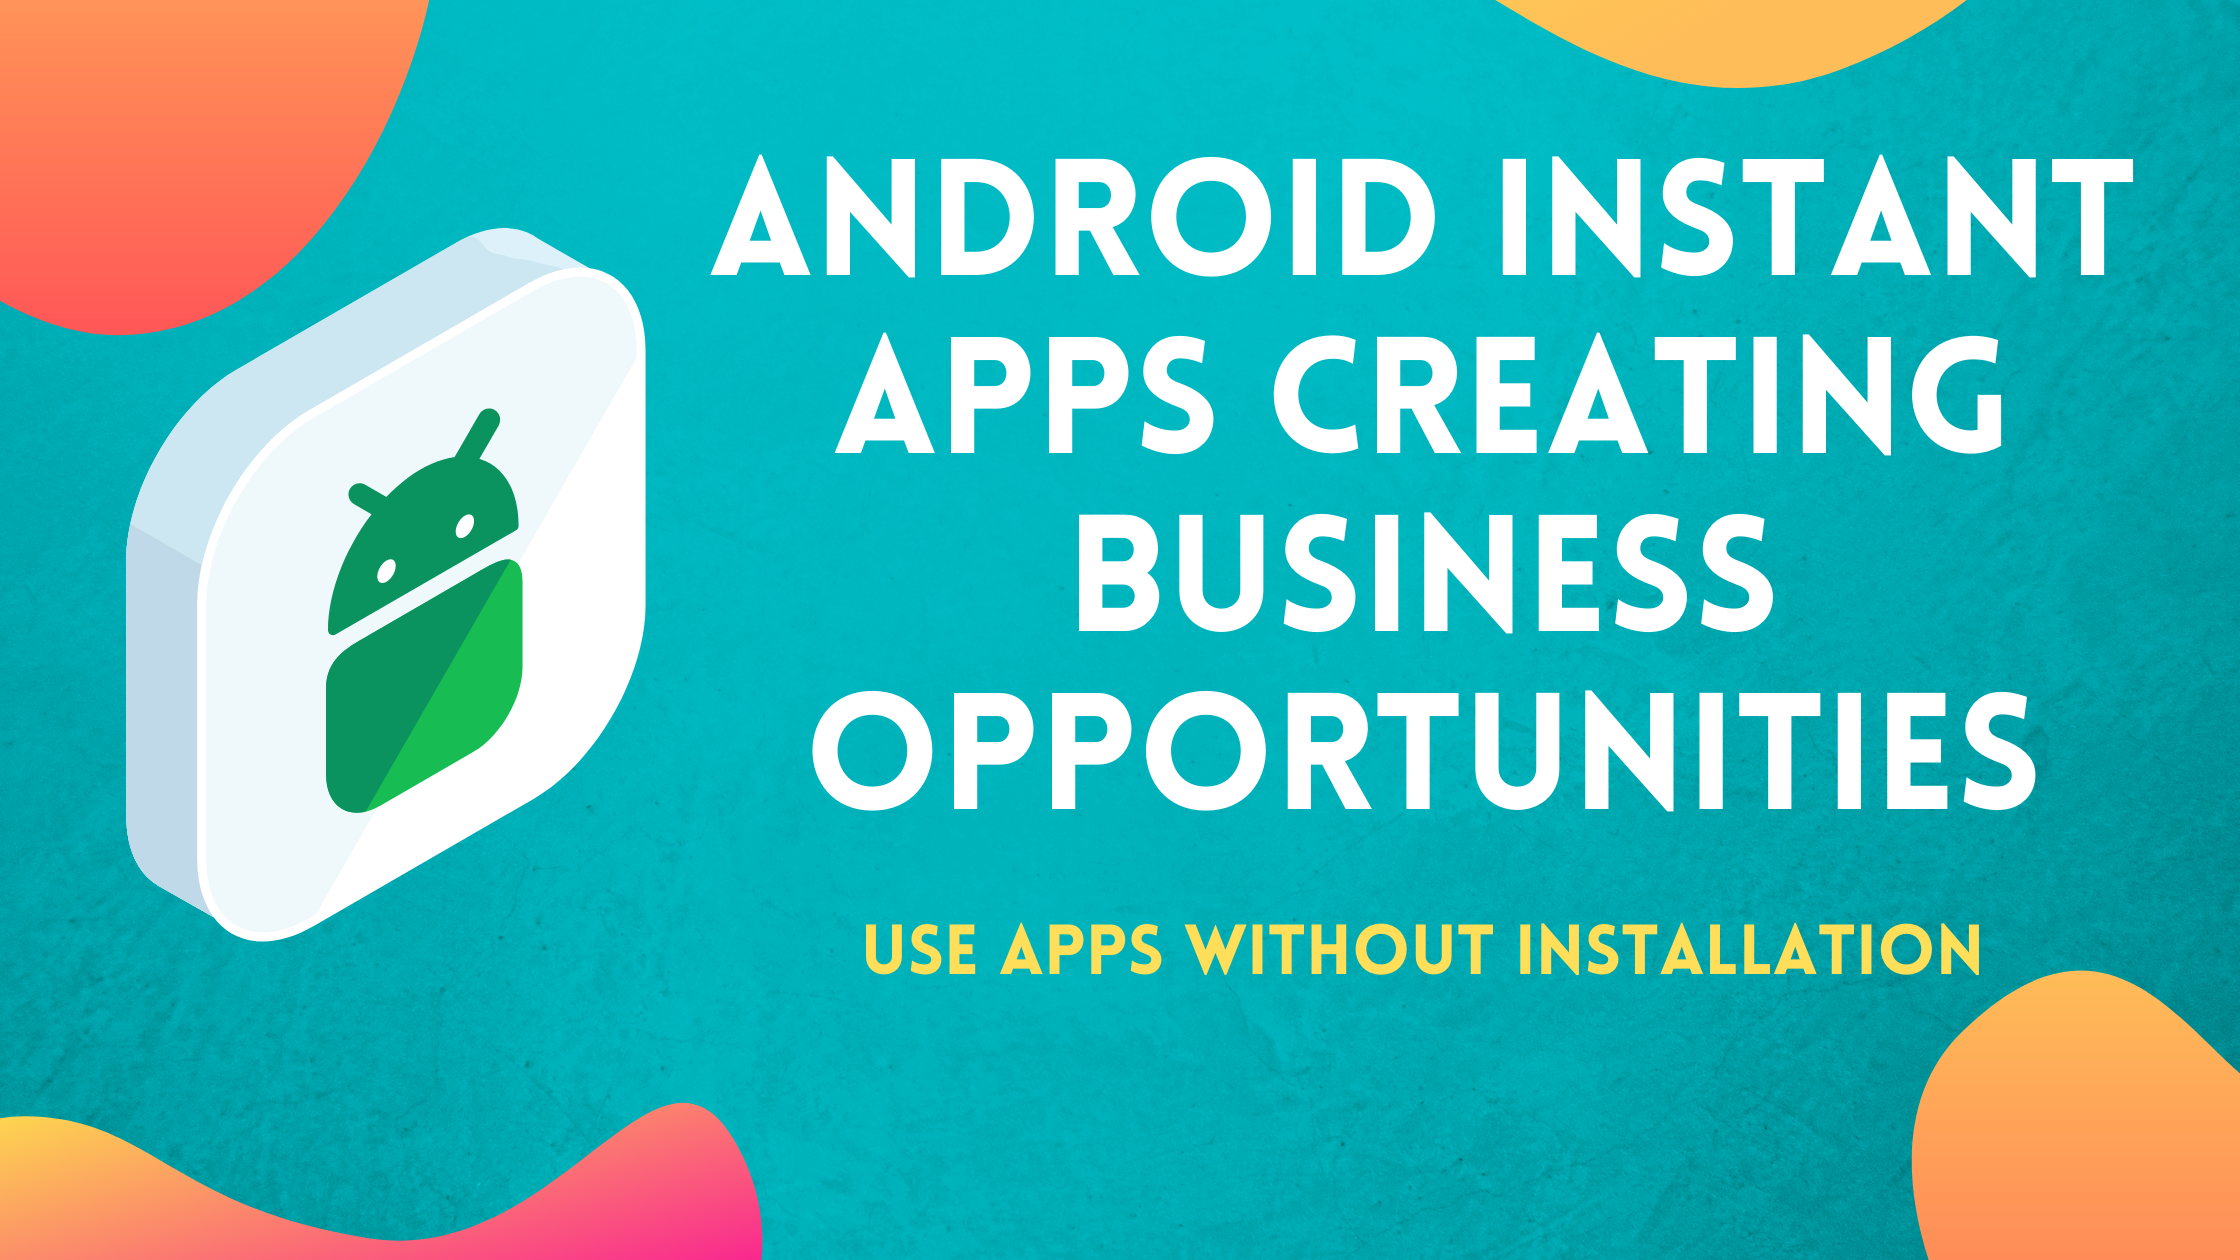 Android Instant Apps will create many Business Opportunities